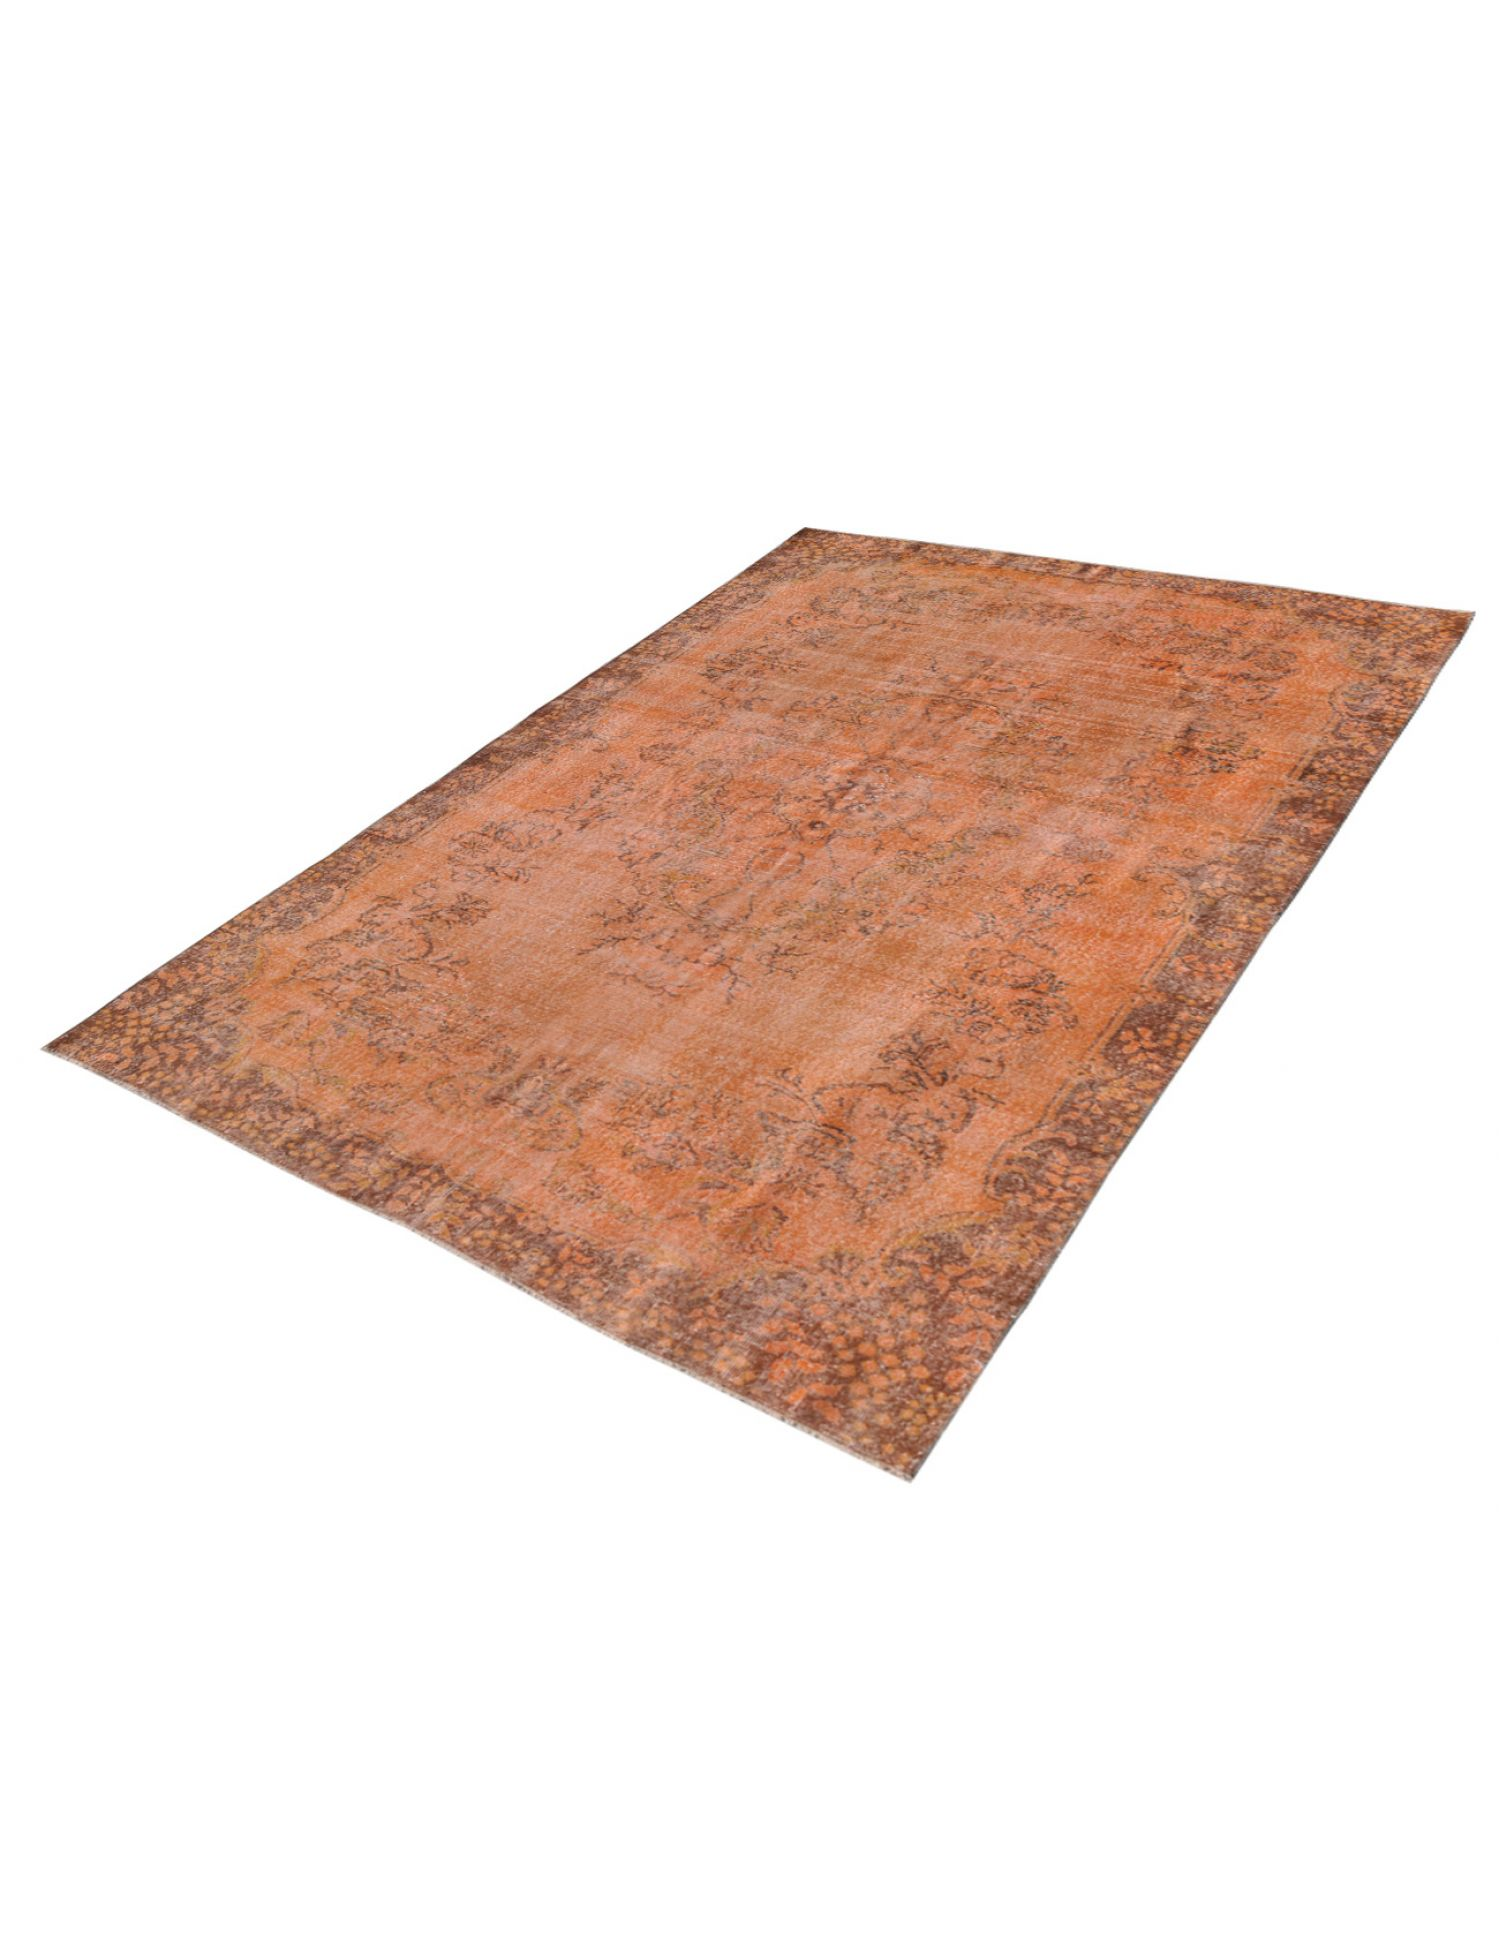 Teppich turkis vintage  orange <br/>315 x 200 cm